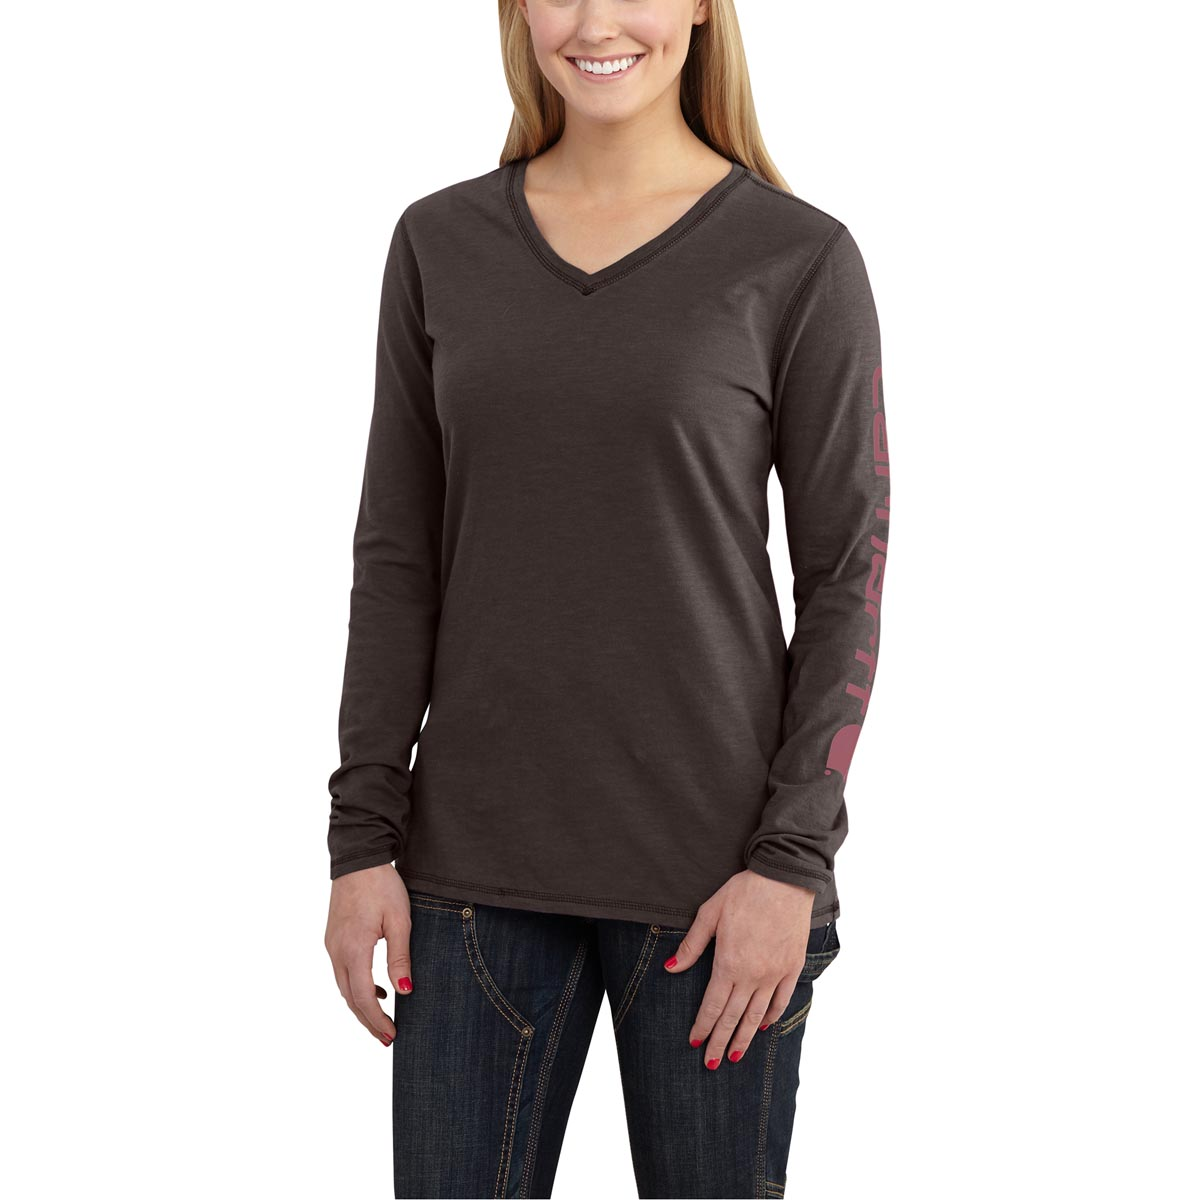 Carhartt Women's Sleeve Logo Long Sleeve T Shirt